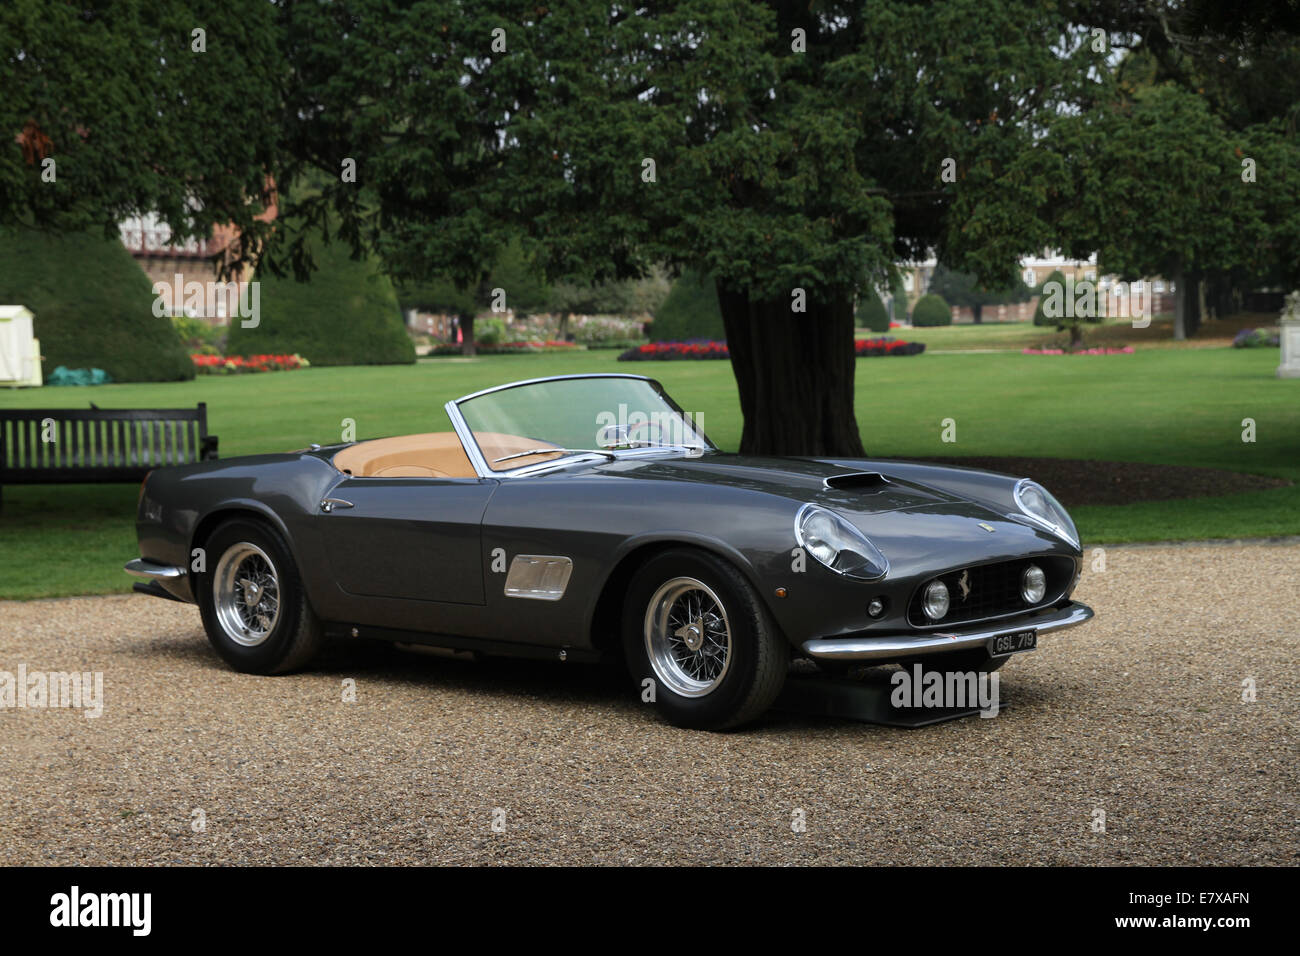 1961 Ferrari California Spyder Swb Competizione Stock Photo